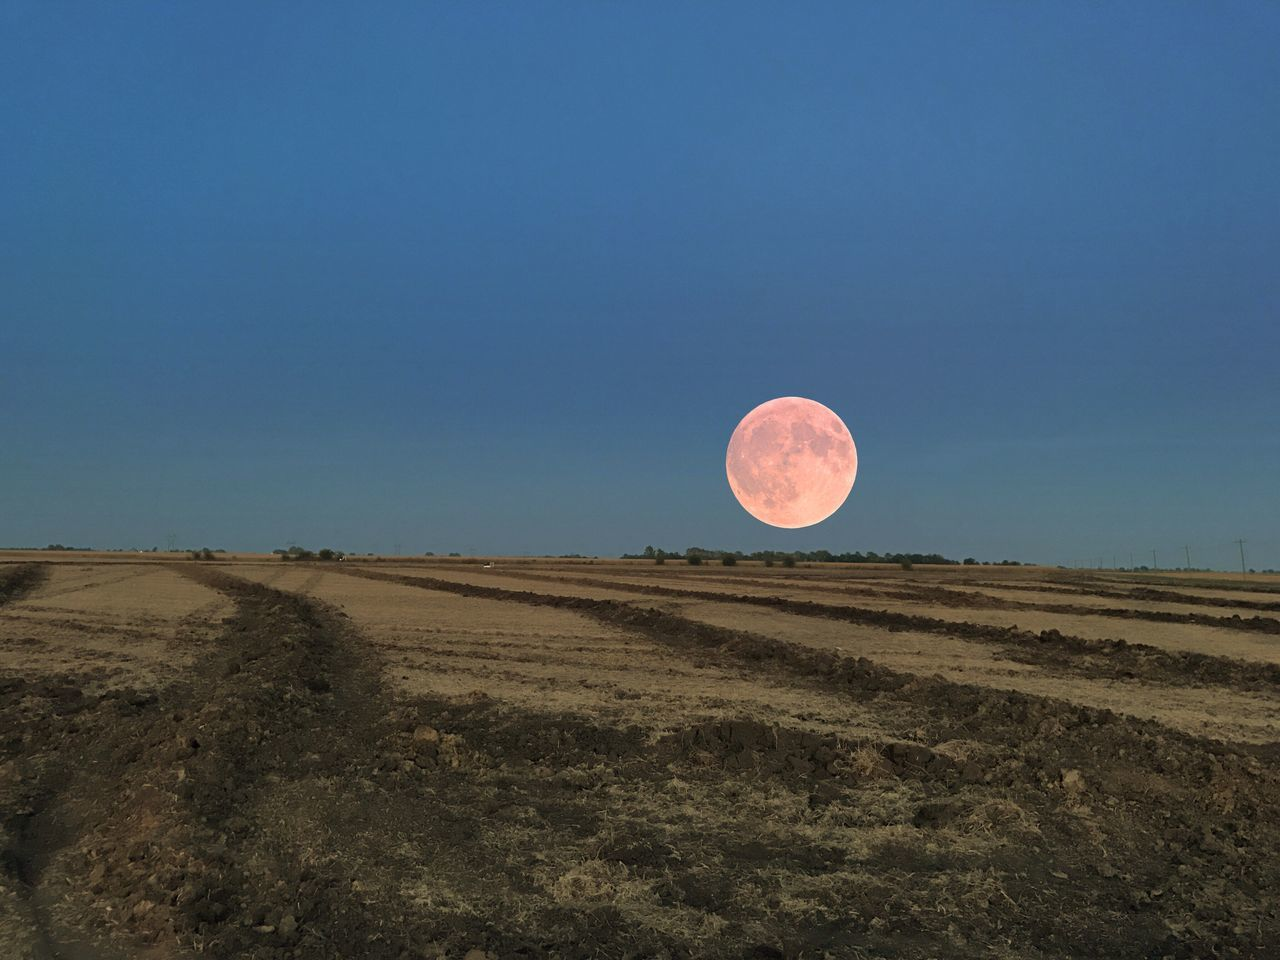 Harvest Moon Clear Sky Tranquil Scene Landscape Tranquility Blue Scenics Copy Space Beauty In Nature Nature Moon Non-urban Scene Outdoors Remote Majestic Horizon Over Land Countryside Solitude Country Road Exploration No People